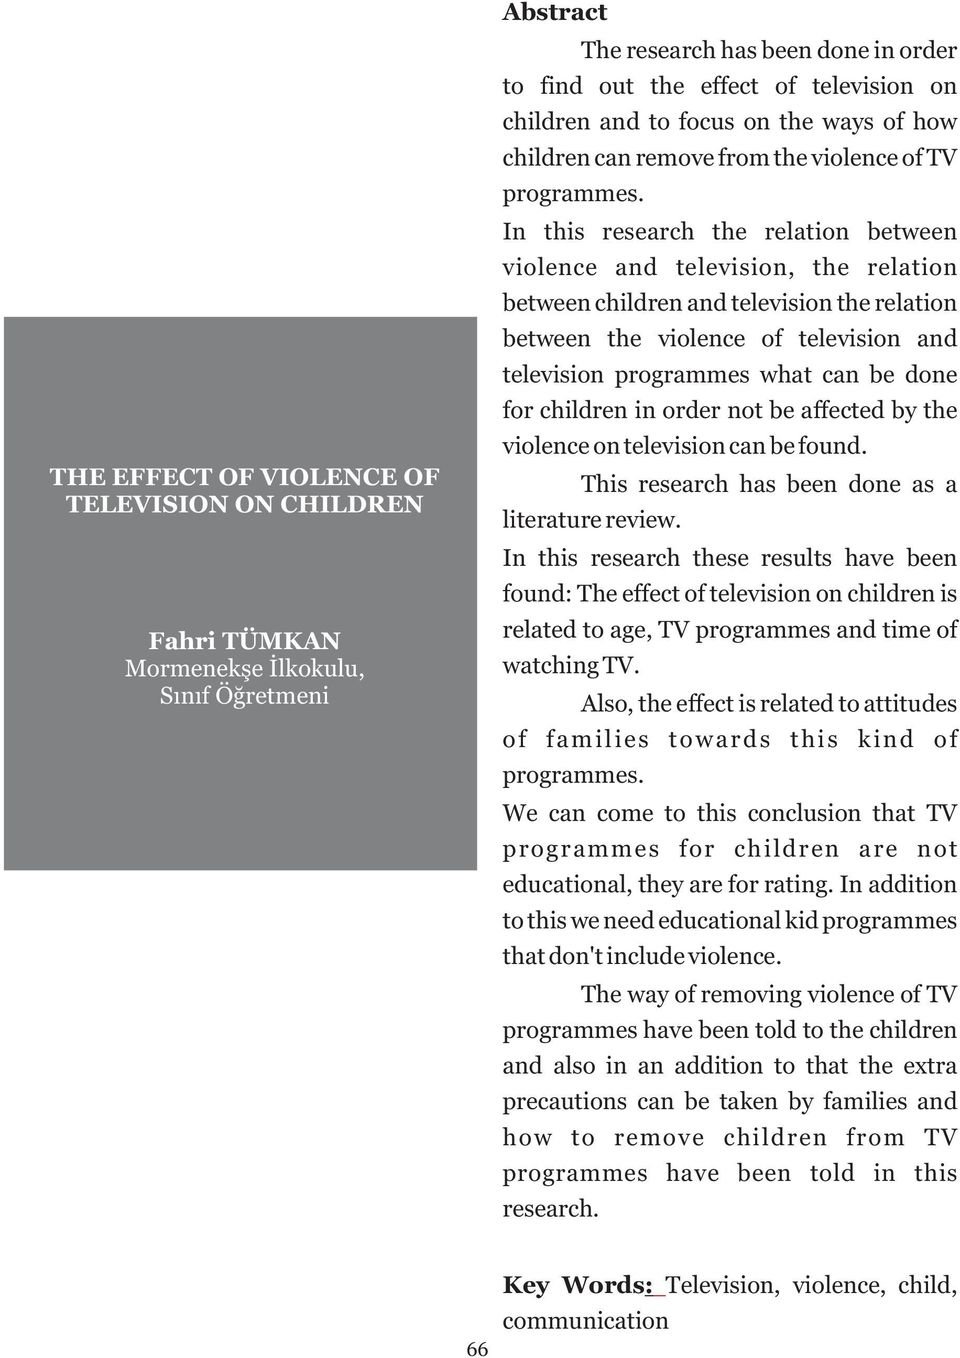 In this research the relation between violence and television, the relation between children and television the relation between the violence of television and television programmes what can be done